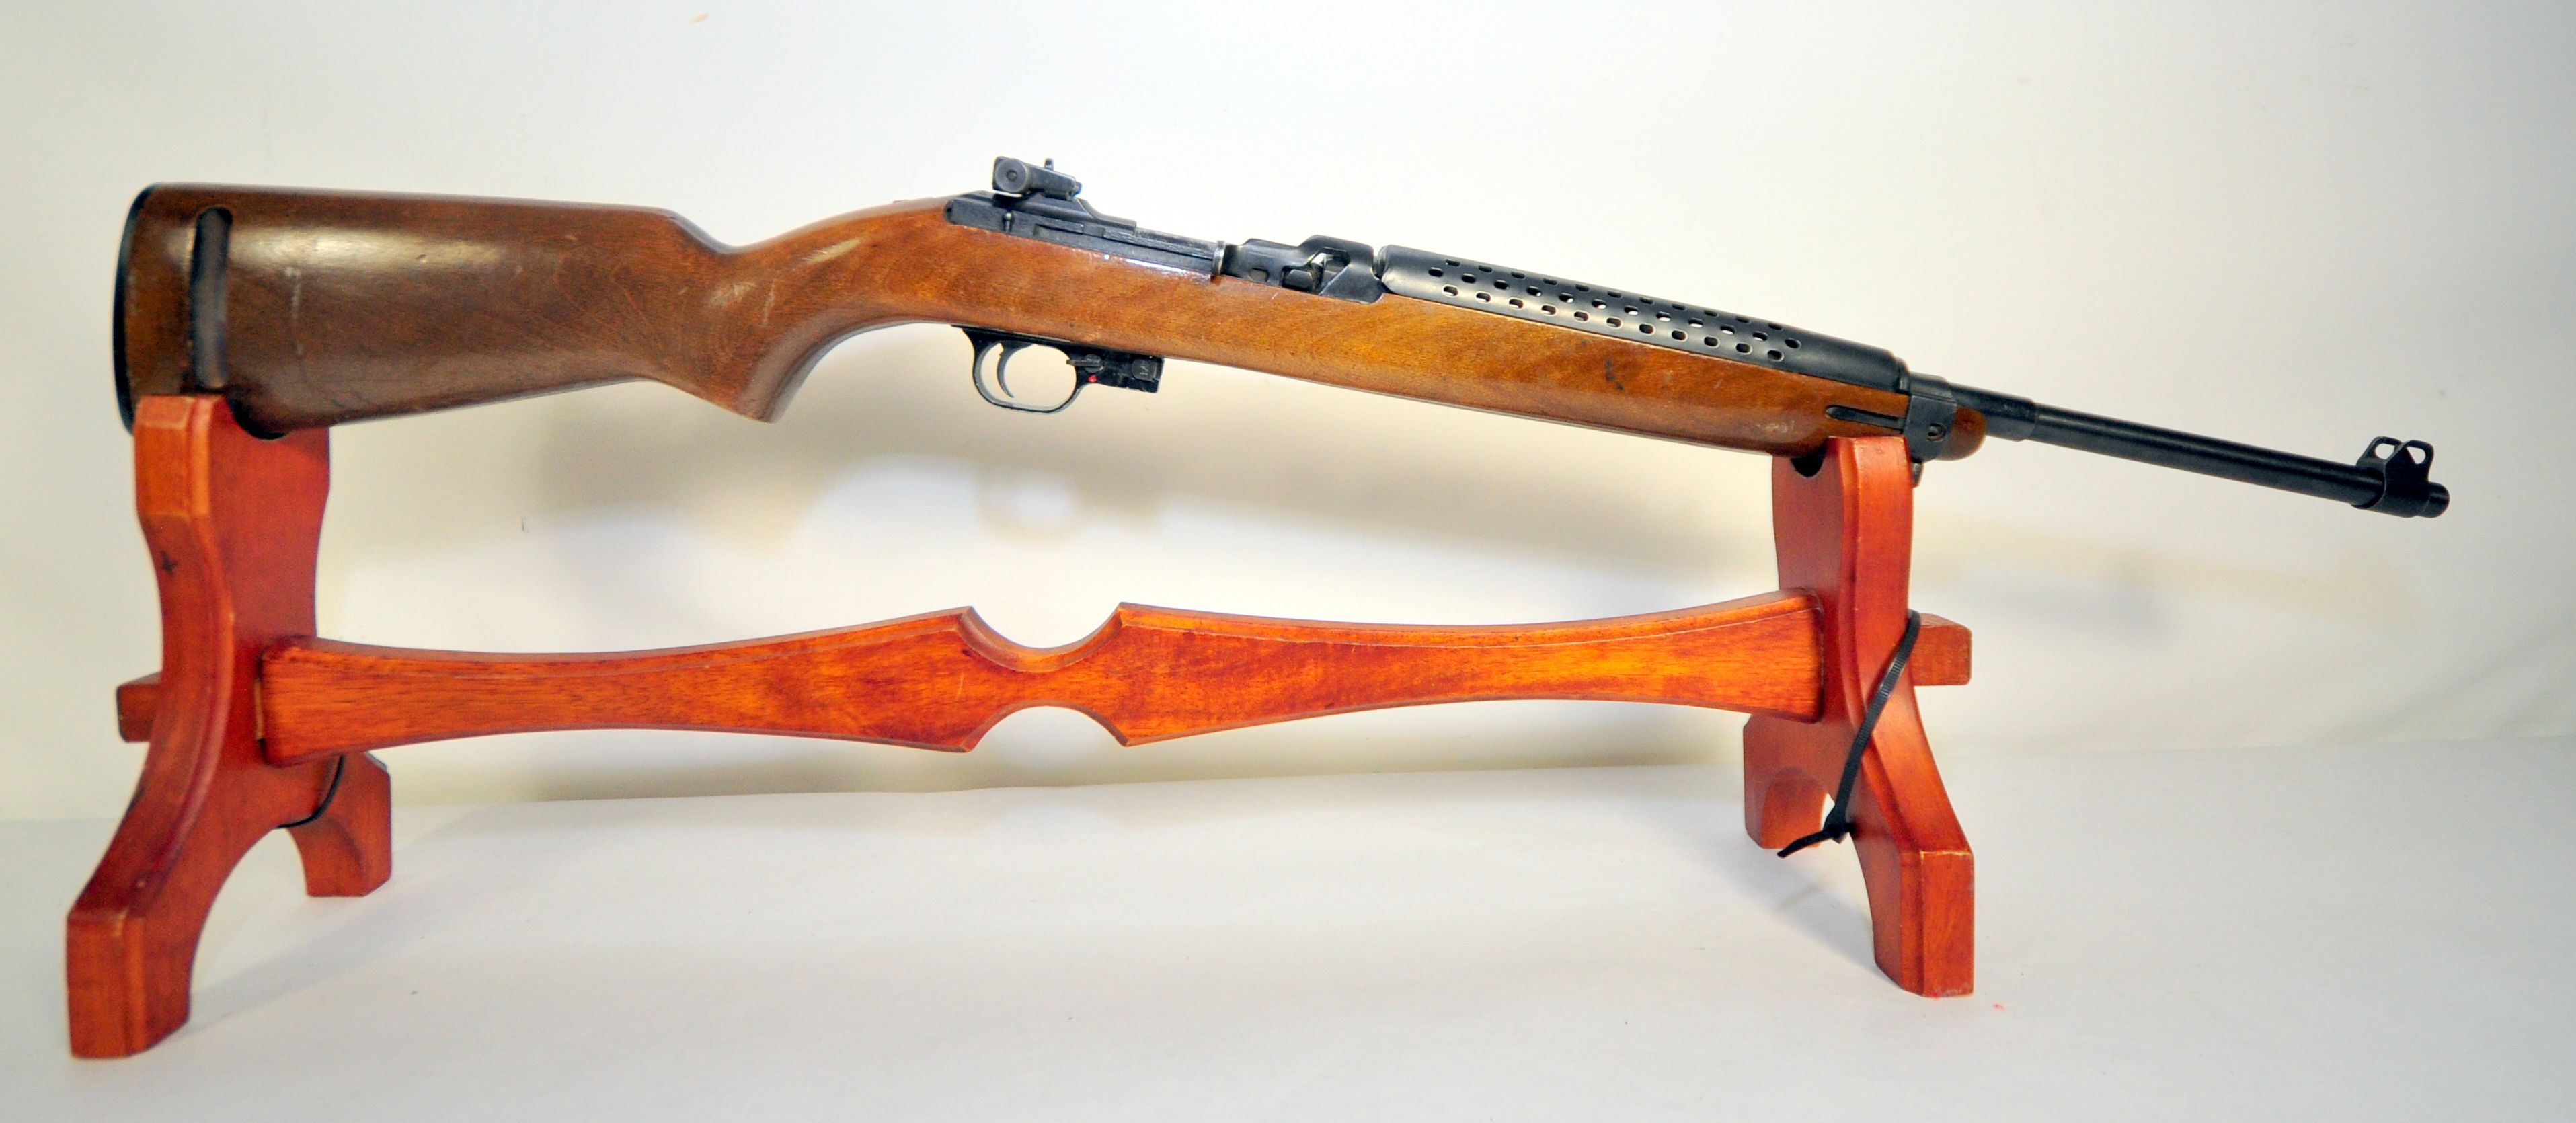 Universal Firearms M1 Carbine 30 A Commercial Copy Of The M1